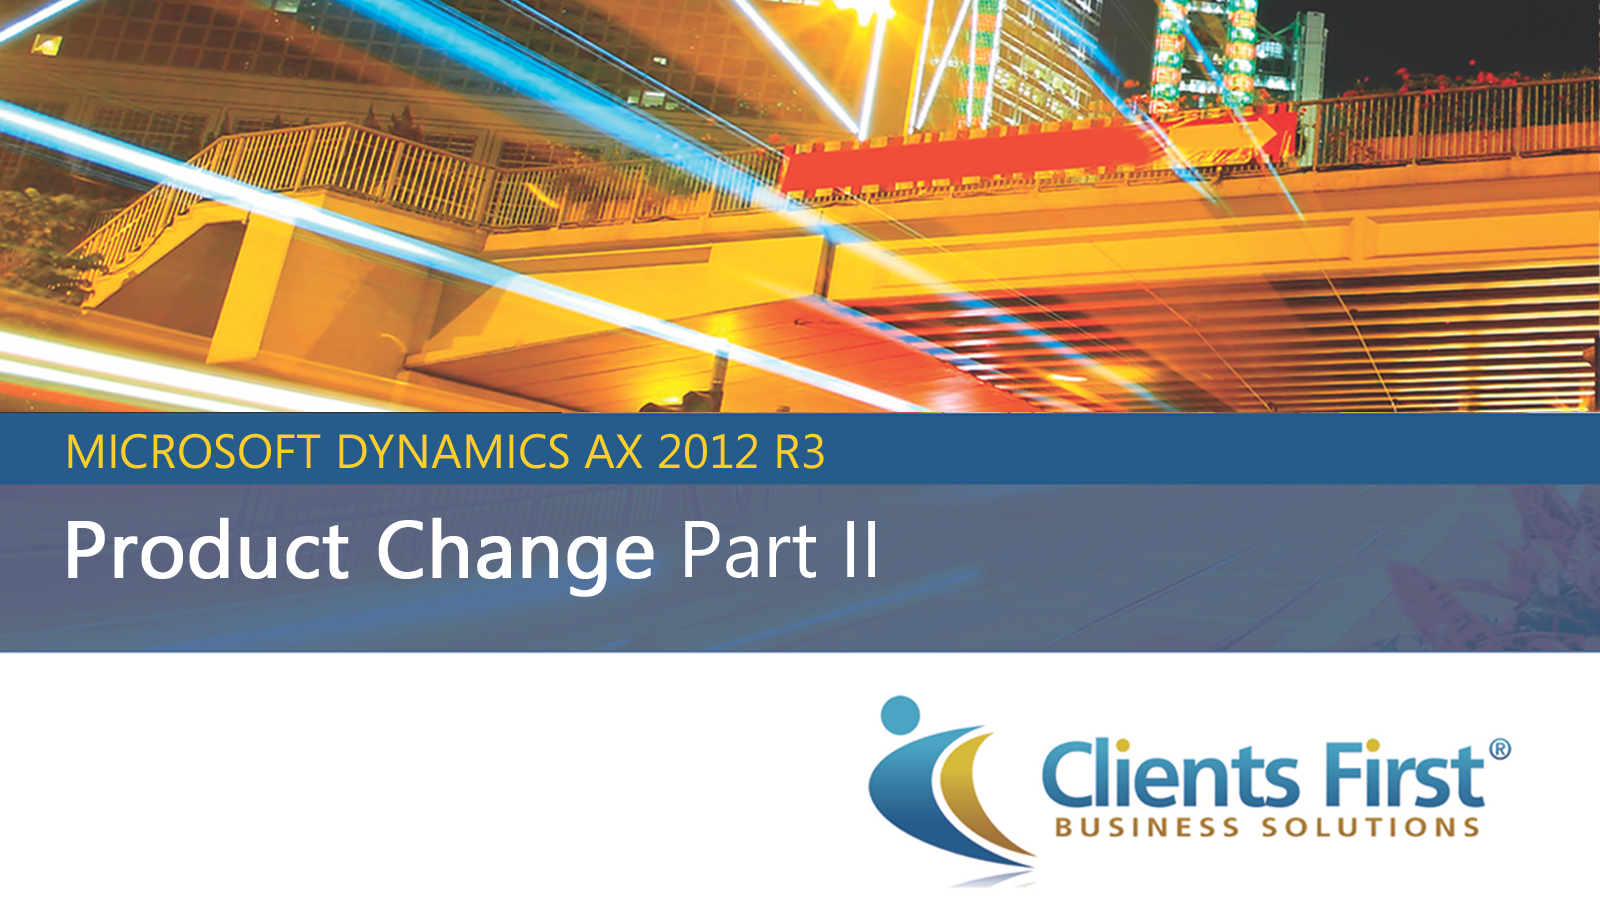 AX 2012 R3 Product Change